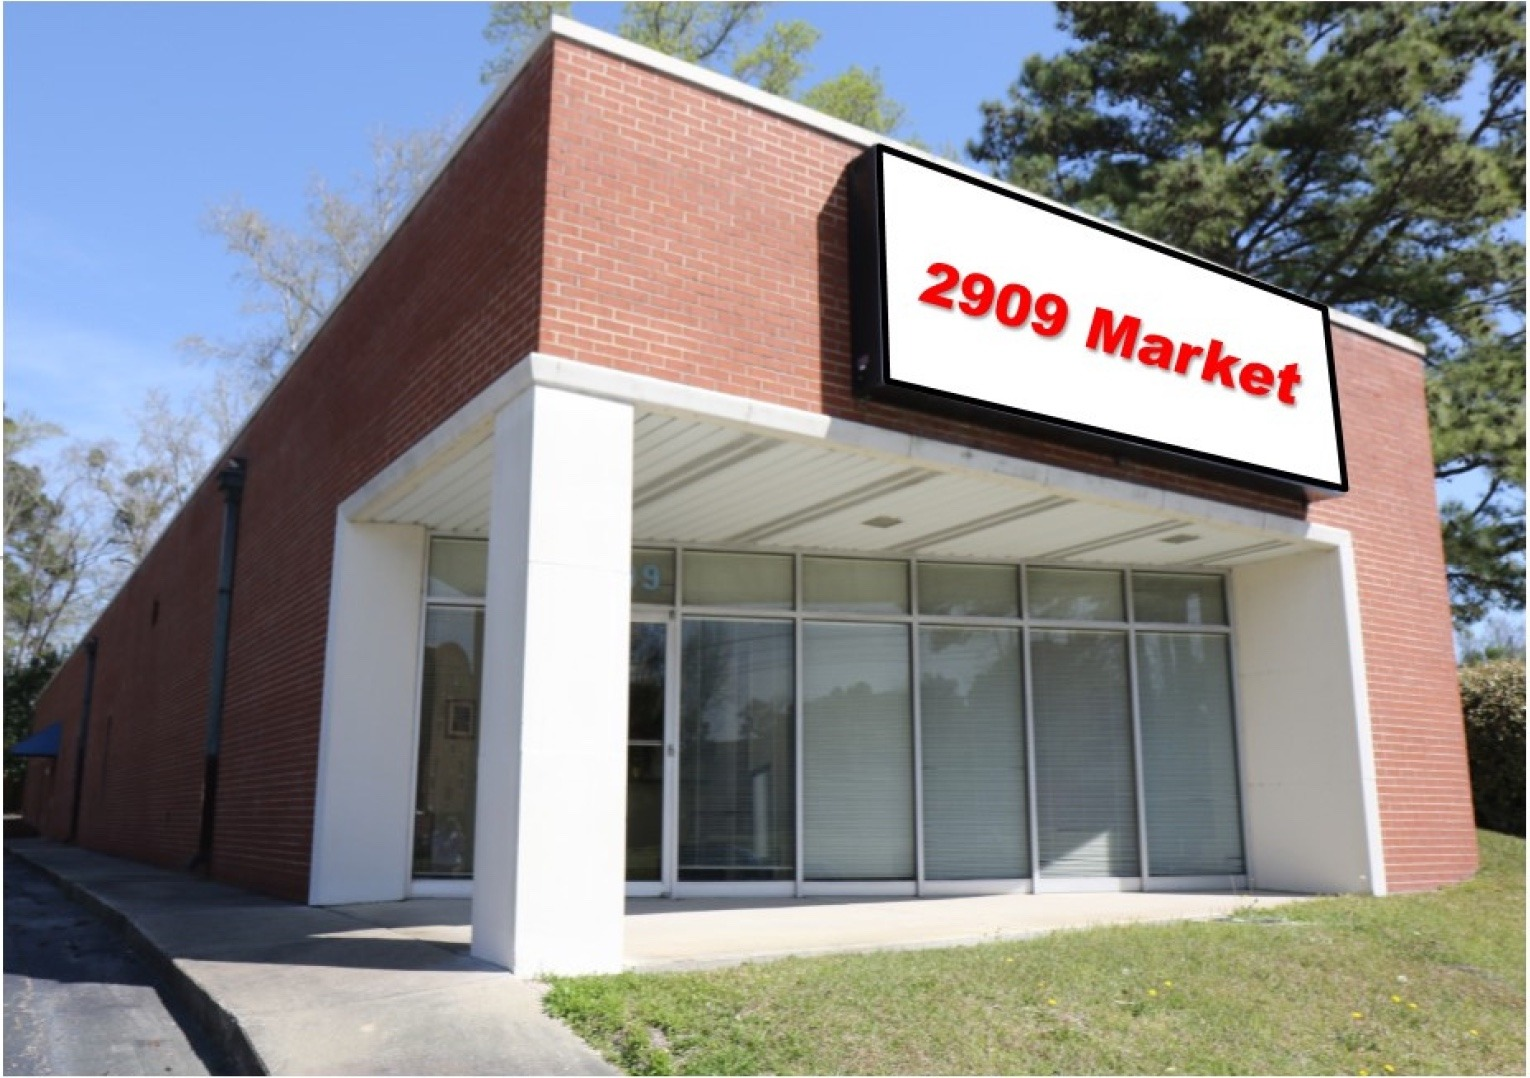 Highly Visible & High Traffic Office Location on Market Street